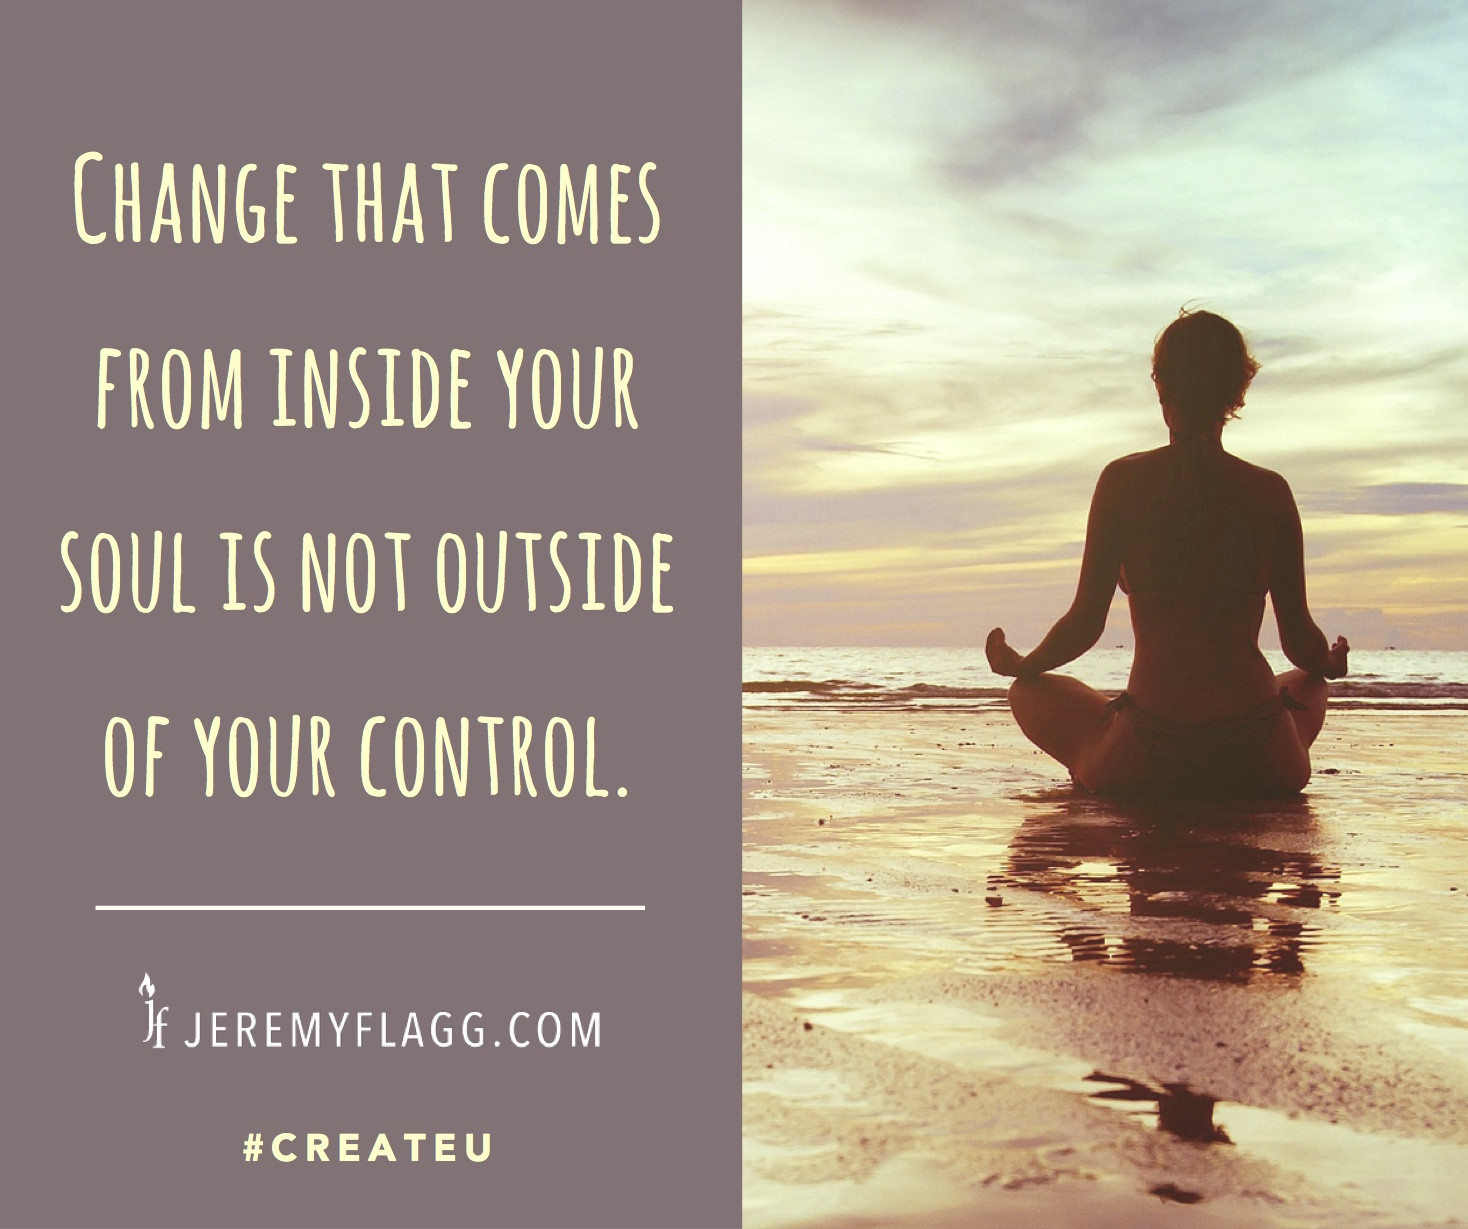 Change-inside-outside-quote-Jeremy-Flagg-FB